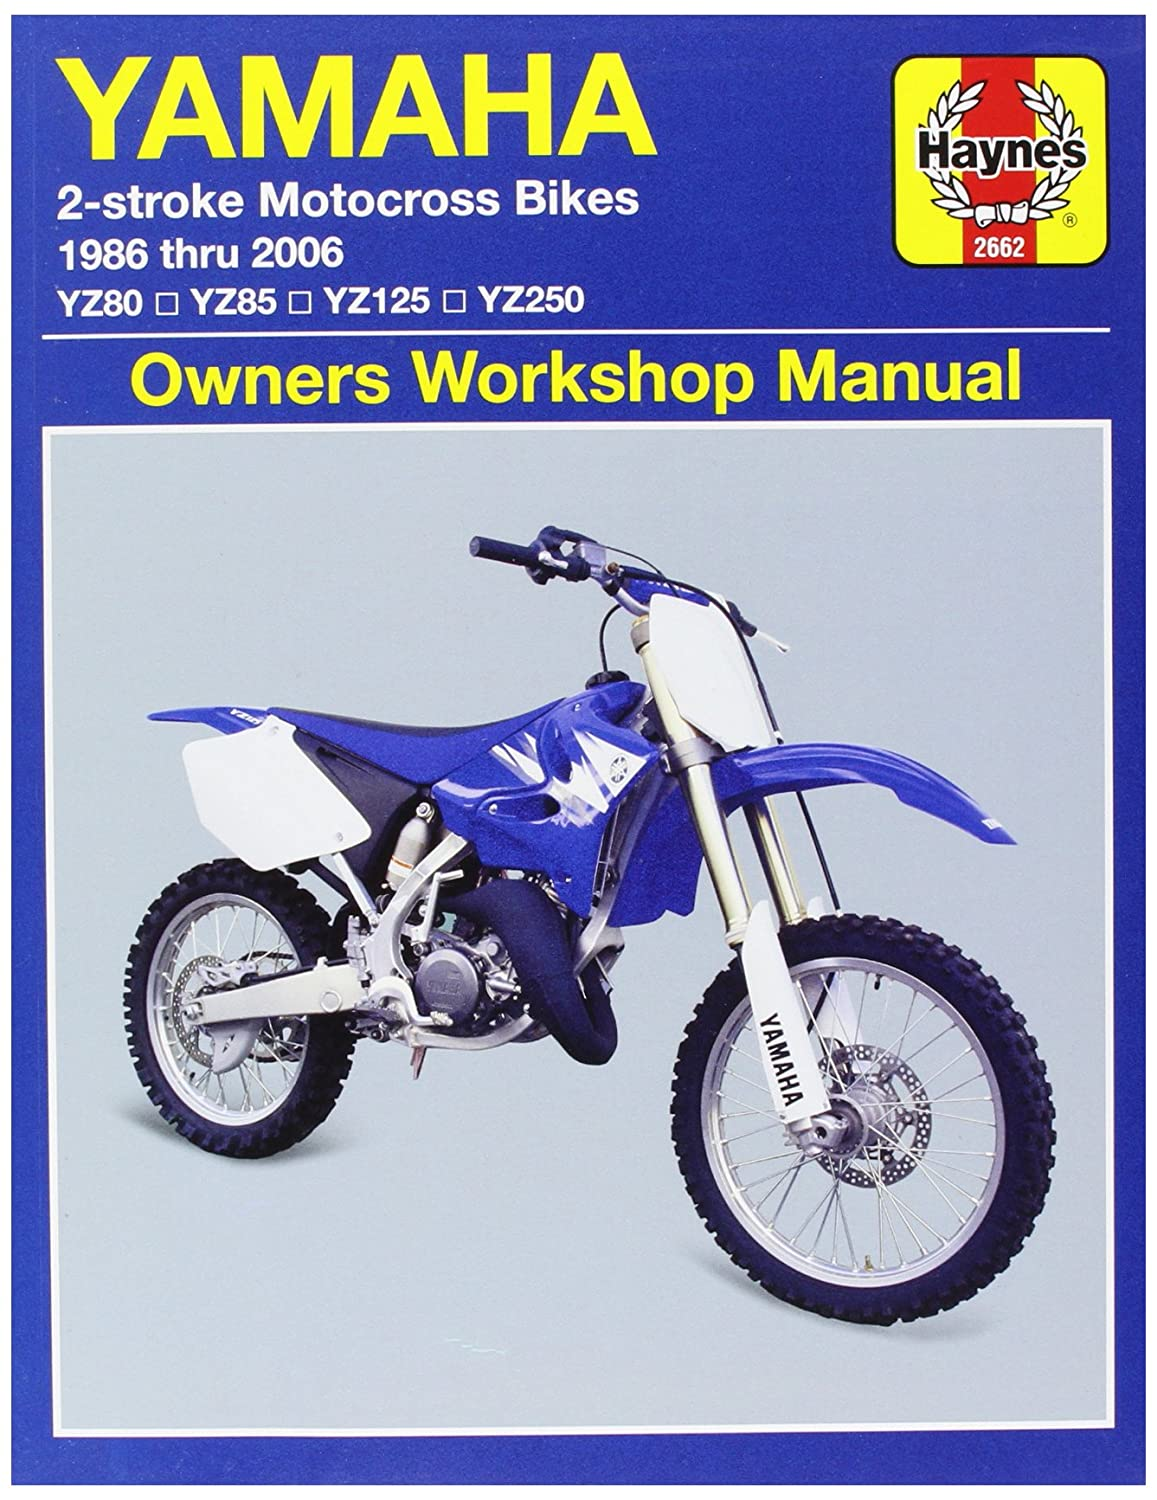 Amazon.com: Haynes Manuals 2662 MANUAL YAM YZ 2/STR 86-06: Sports & Outdoors